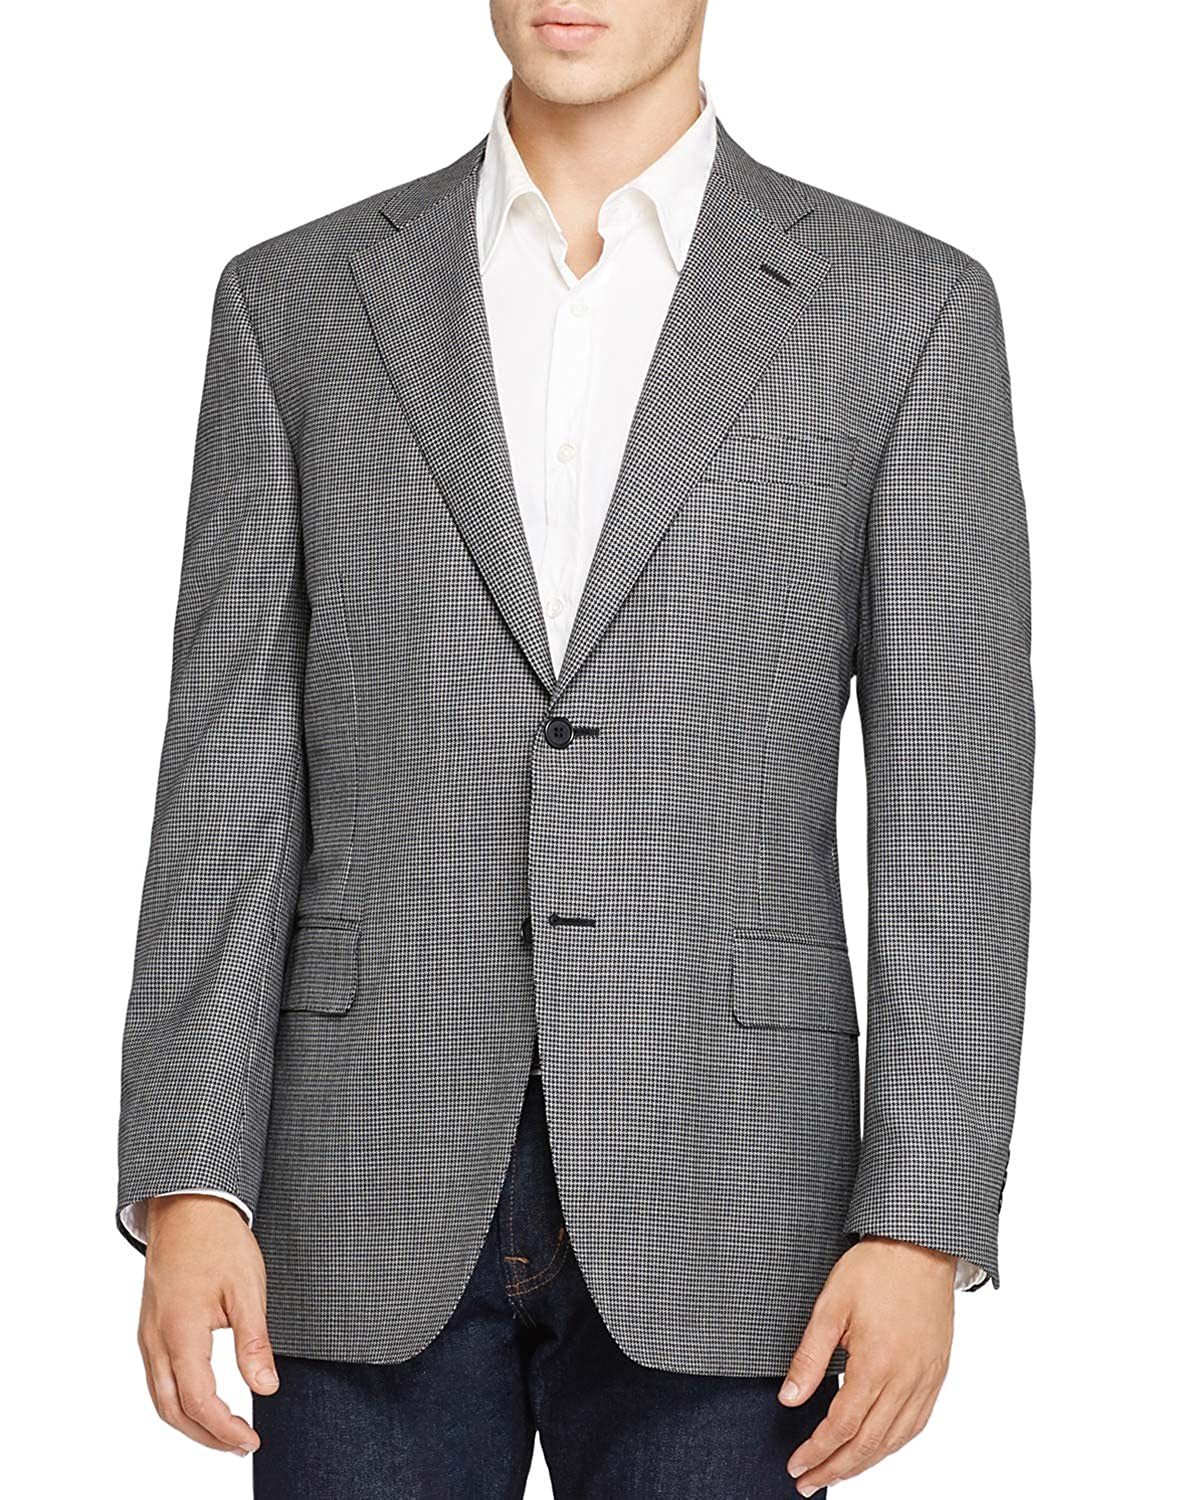 4155f686fda Canali Mens Slim Fit Black   White Houndstooth Sportcoat 40 Long Made in  Italy at Amazon Men s Clothing store